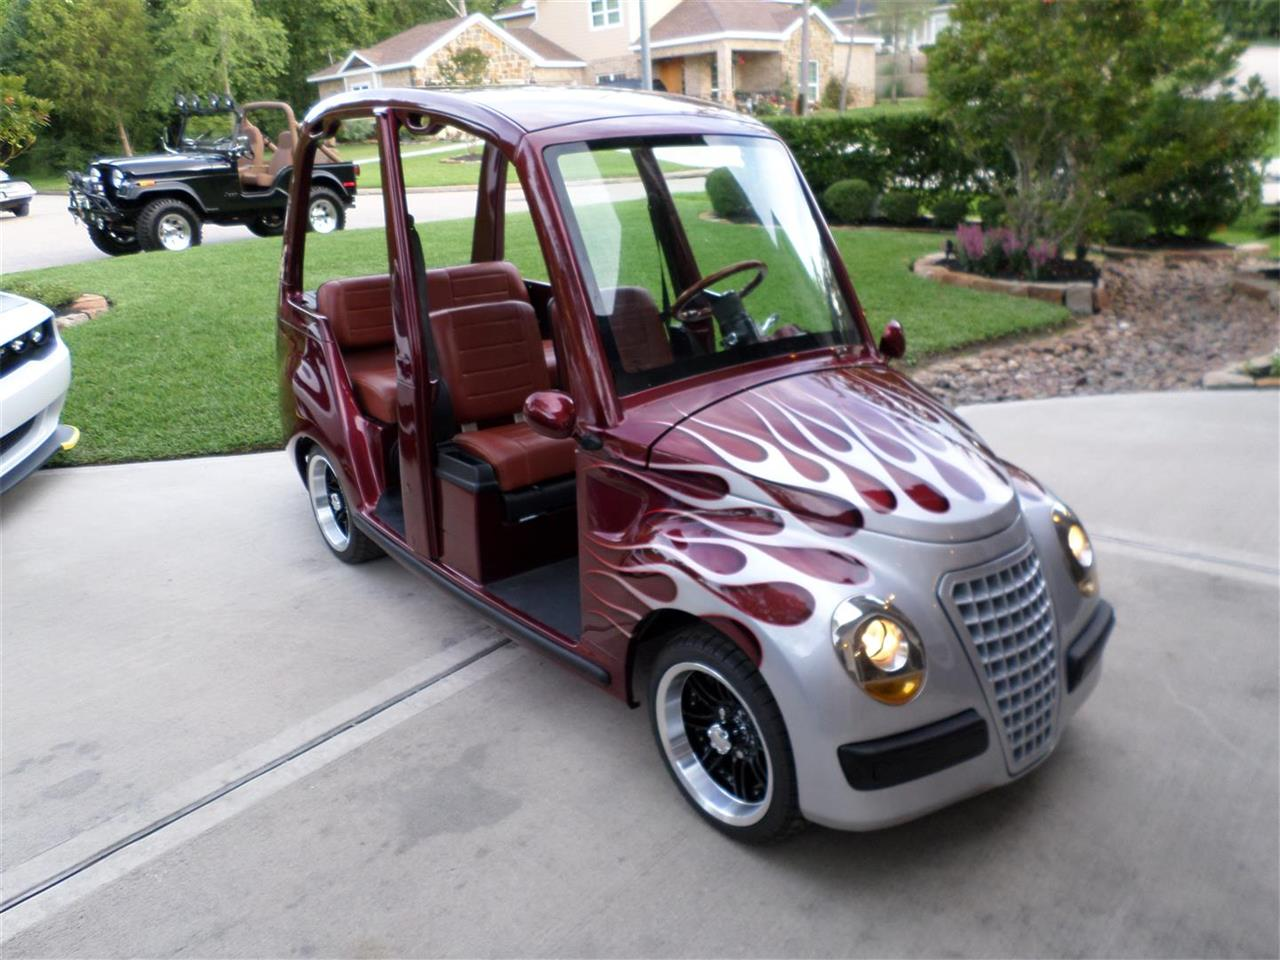 For Sale: 2010 LIDO LS Electric Golf Cart in Conroe, Texas